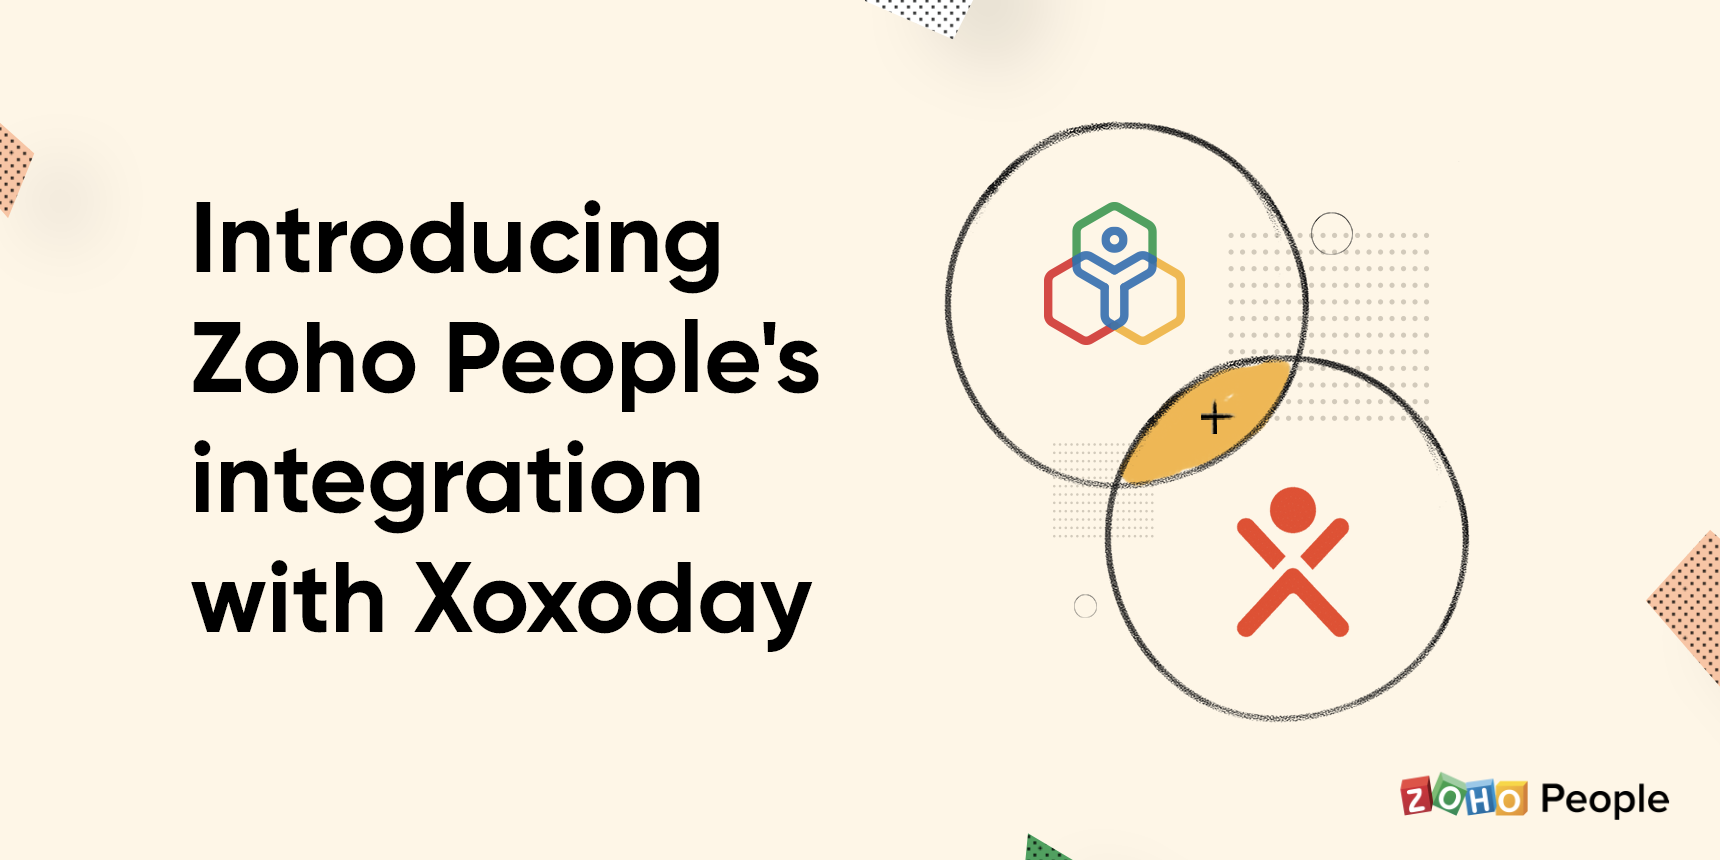 Motivate your employees with rewards and recognition: Zoho People integrates with Xoxoday